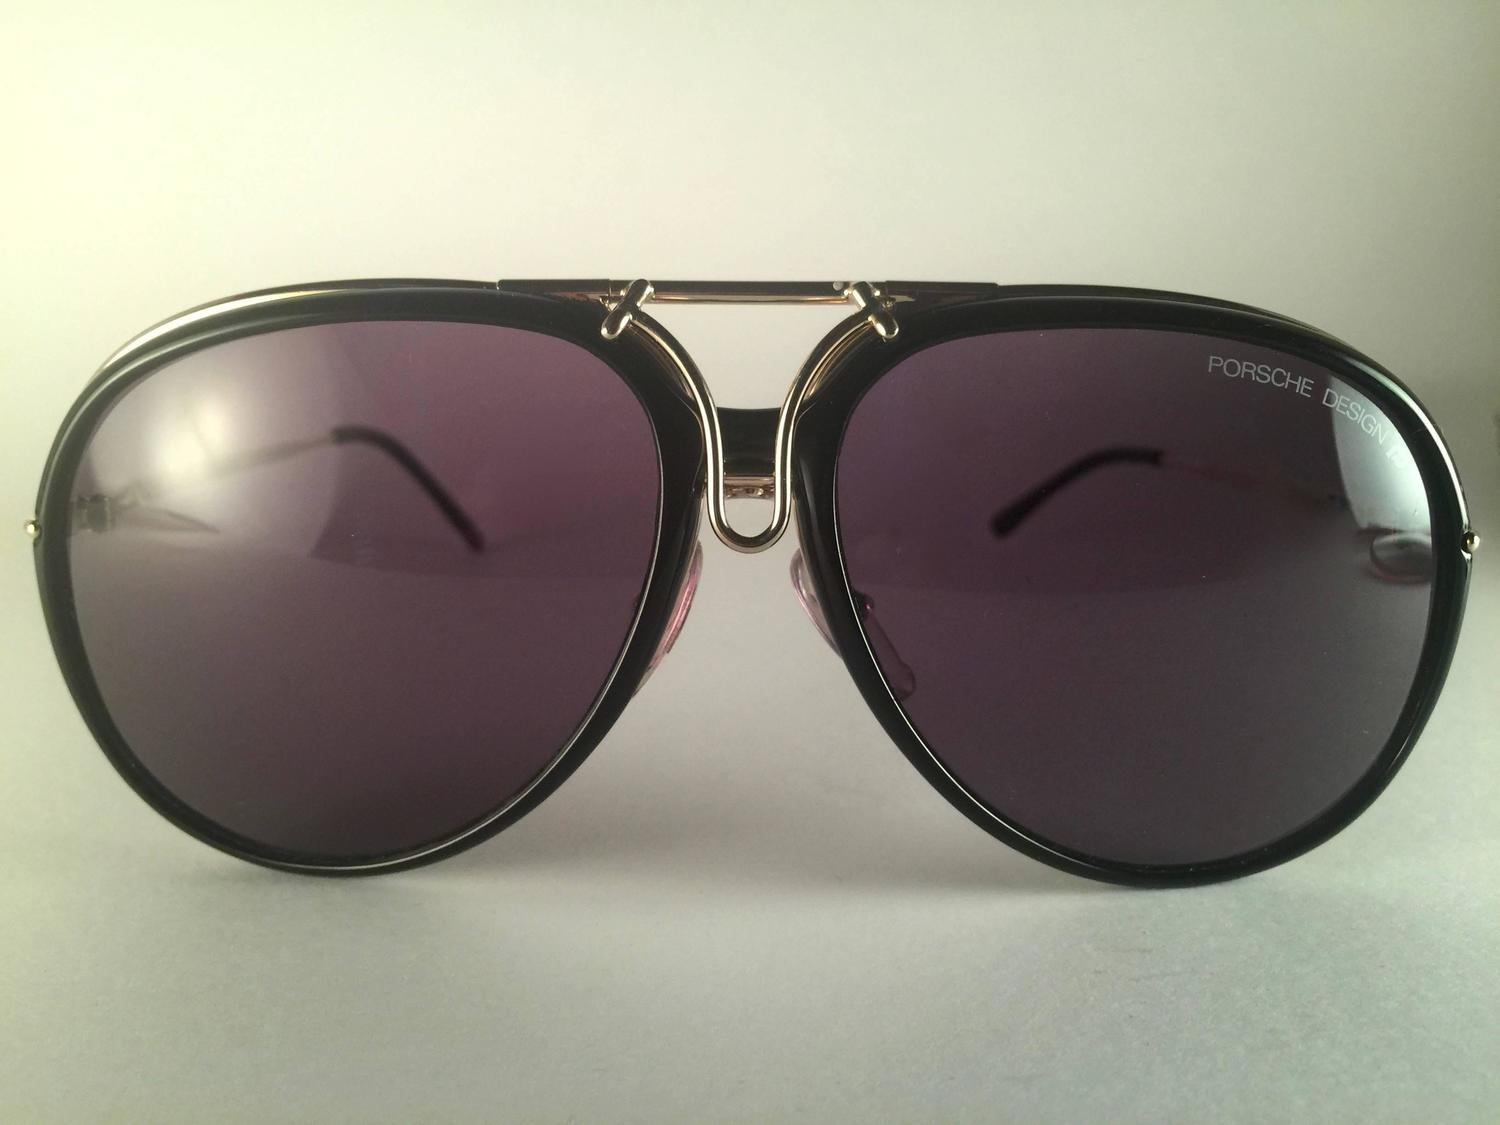 d79580d3fcc24 New Vintage Porsche Design By Carrera 5632 Gold Changeable Front Sunglasses  For Sale at 1stdibs